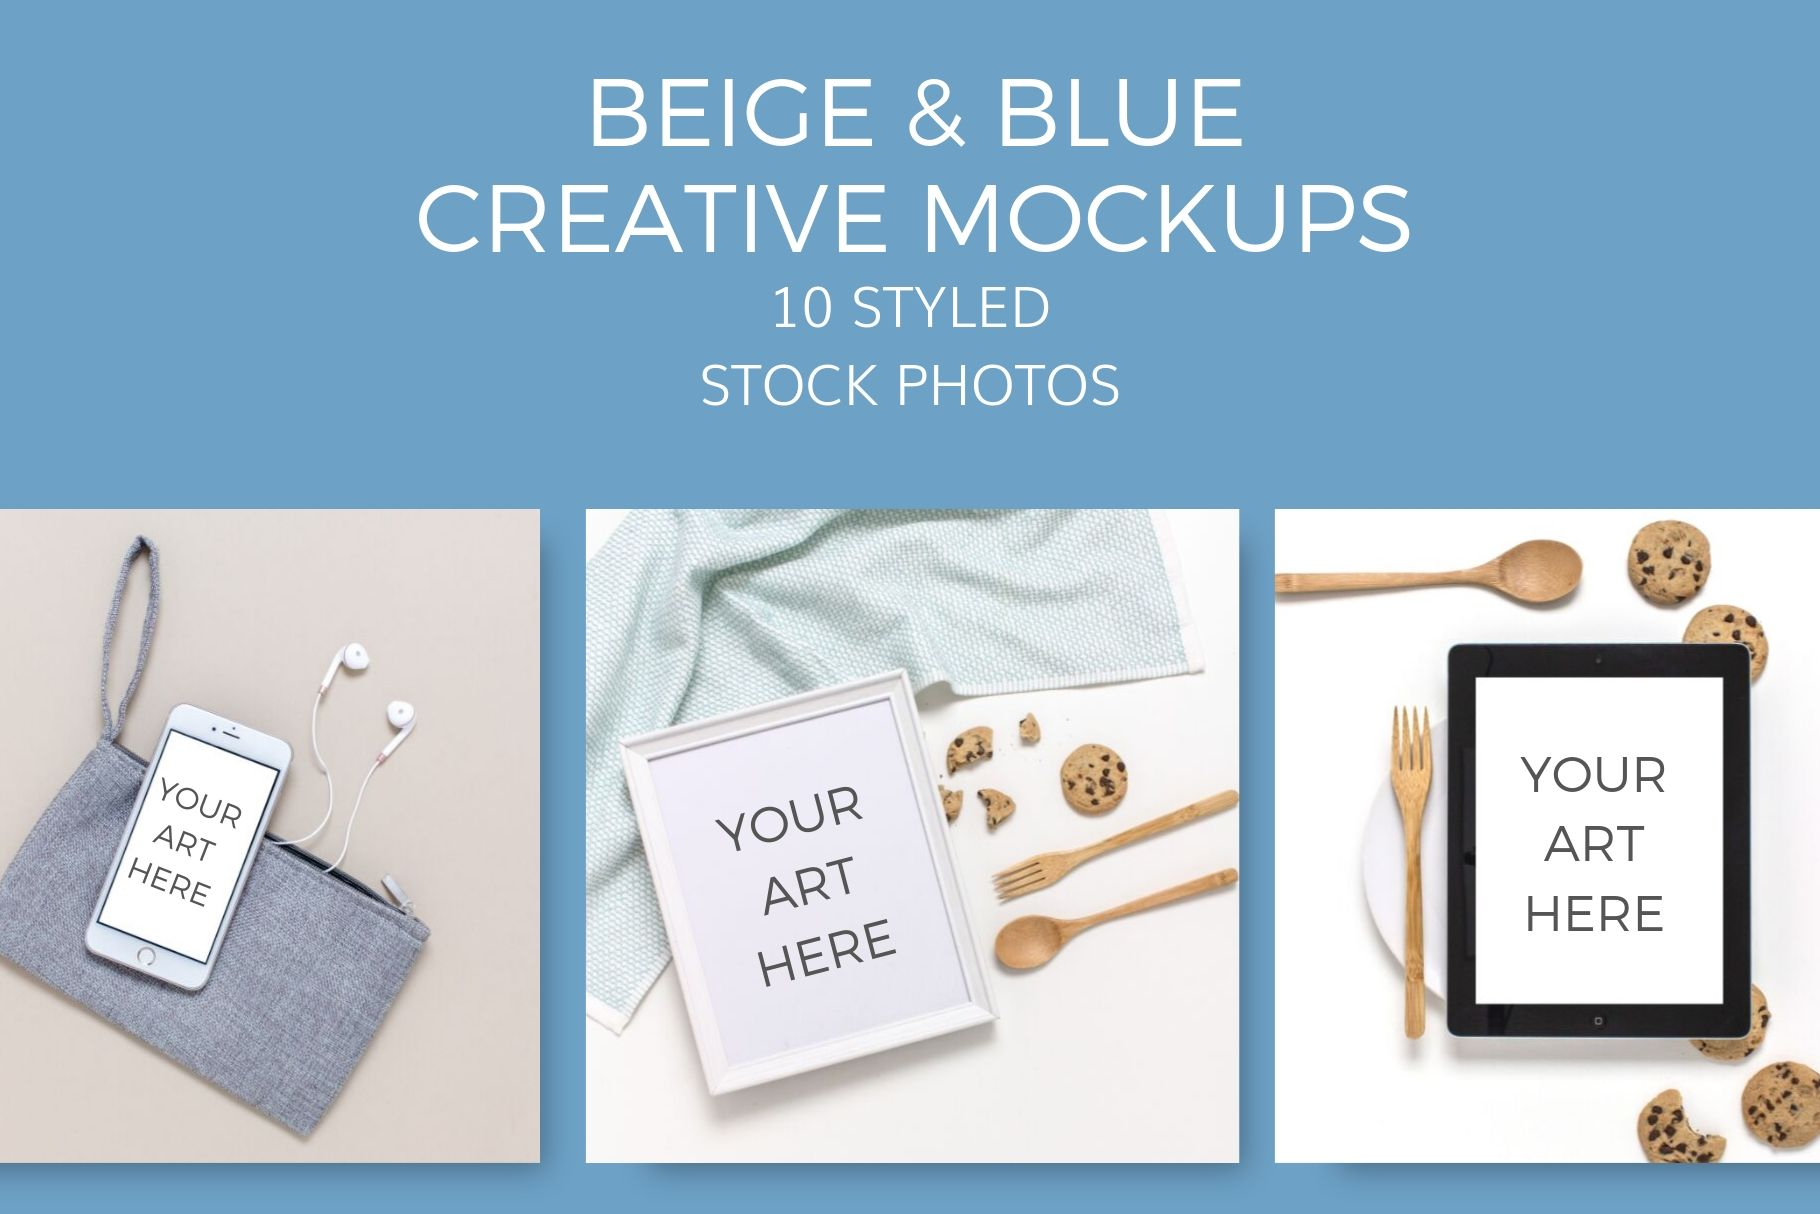 creative beige blue cooking mockups Styled Stock Photos by Ivory MIx(7)